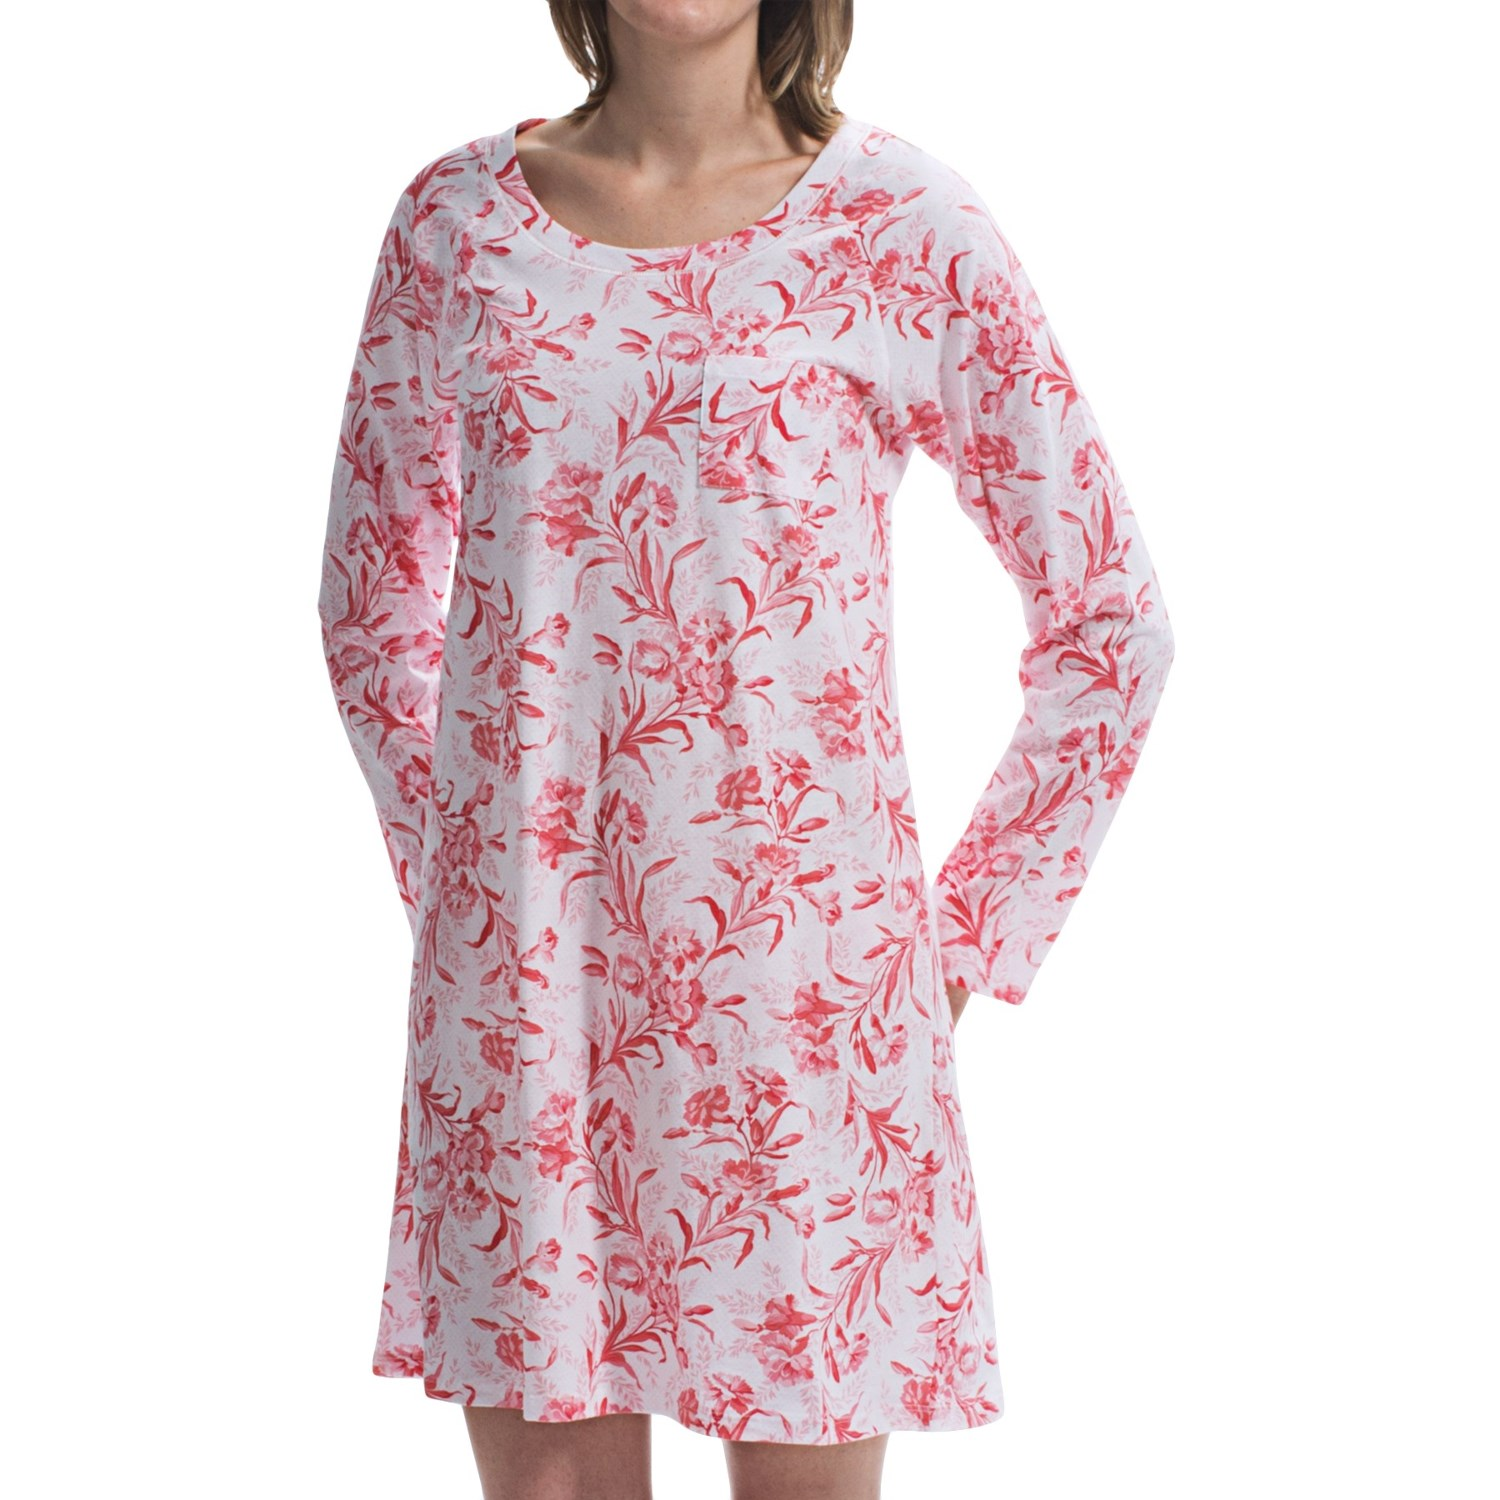 Choose from women's nightshirts that are % cotton or a mix of synthetic materials, which are comfortable to wear and easy to clean. When you slip on a nightgown for women you might feel an over powering urge to break out spontaneously in song.